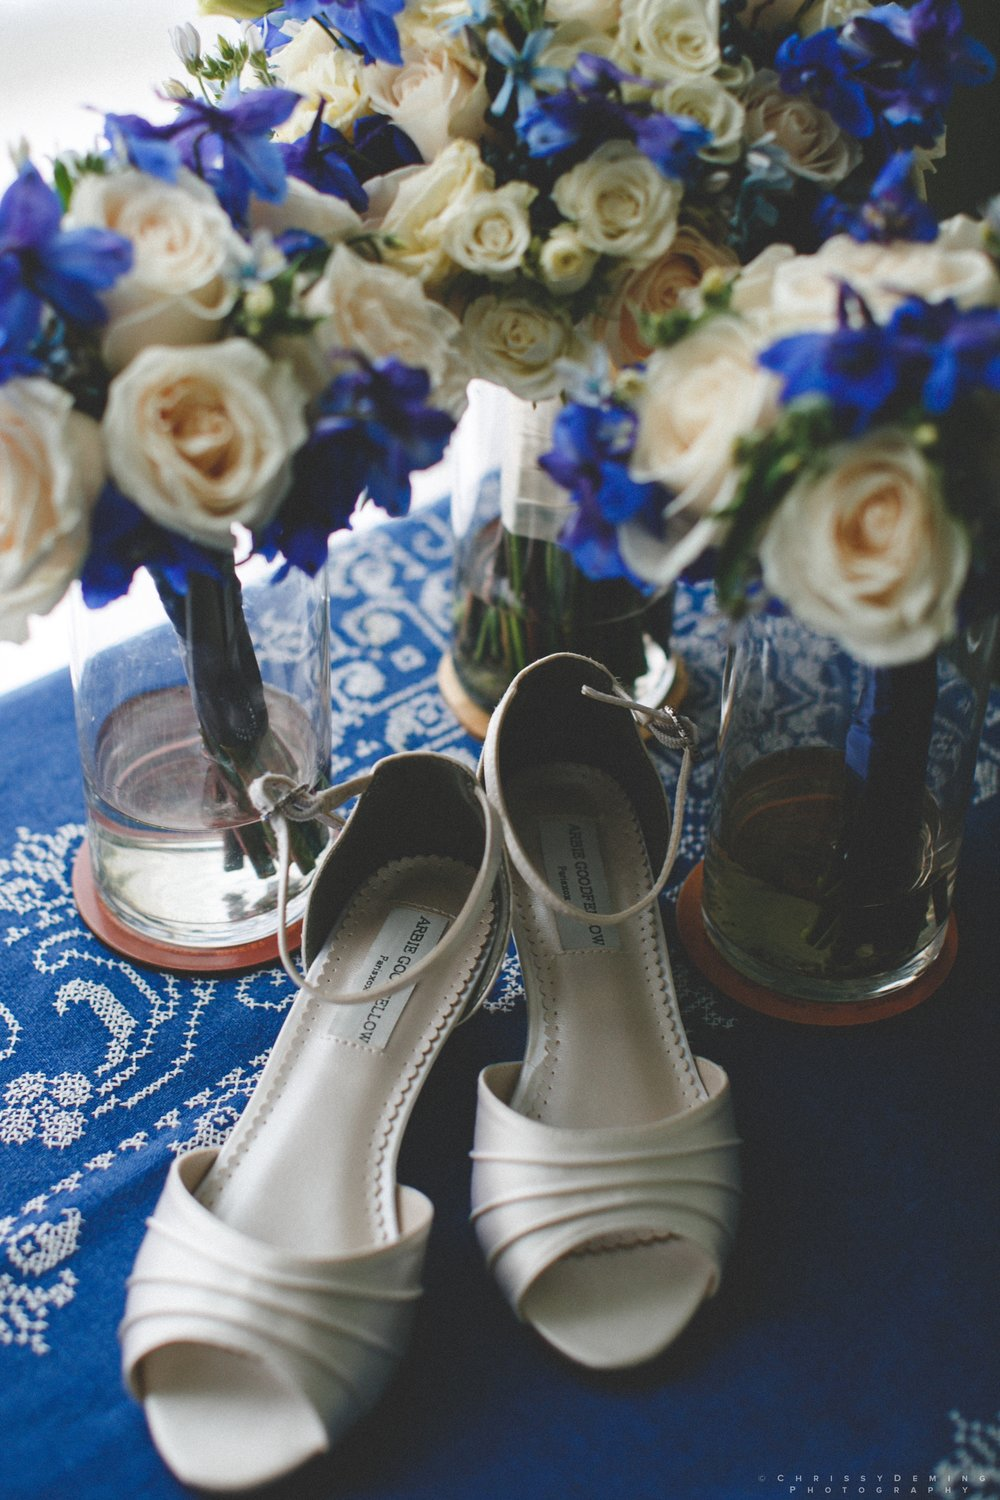 ellwood_house_wedding_photography_0008.jpg